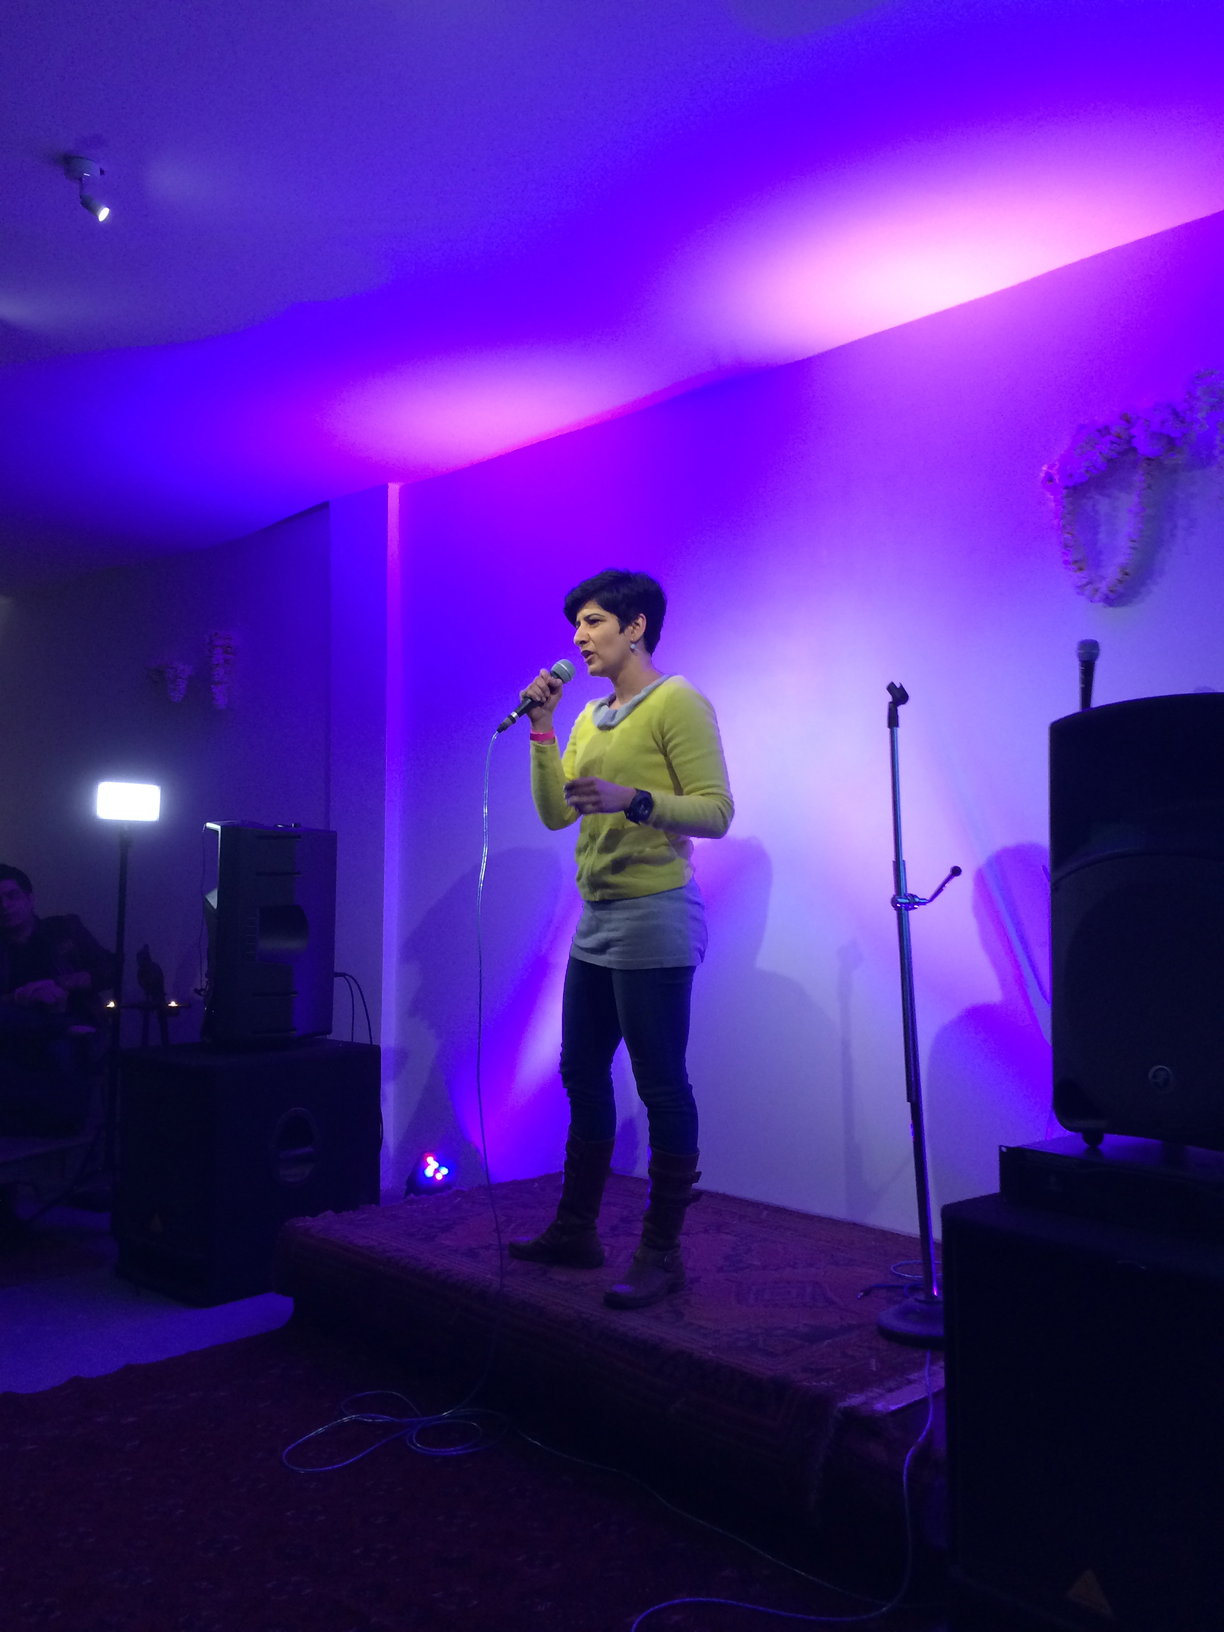 Neeti Palta was last year's winner and not only helped judge but also performed a spot at the show.